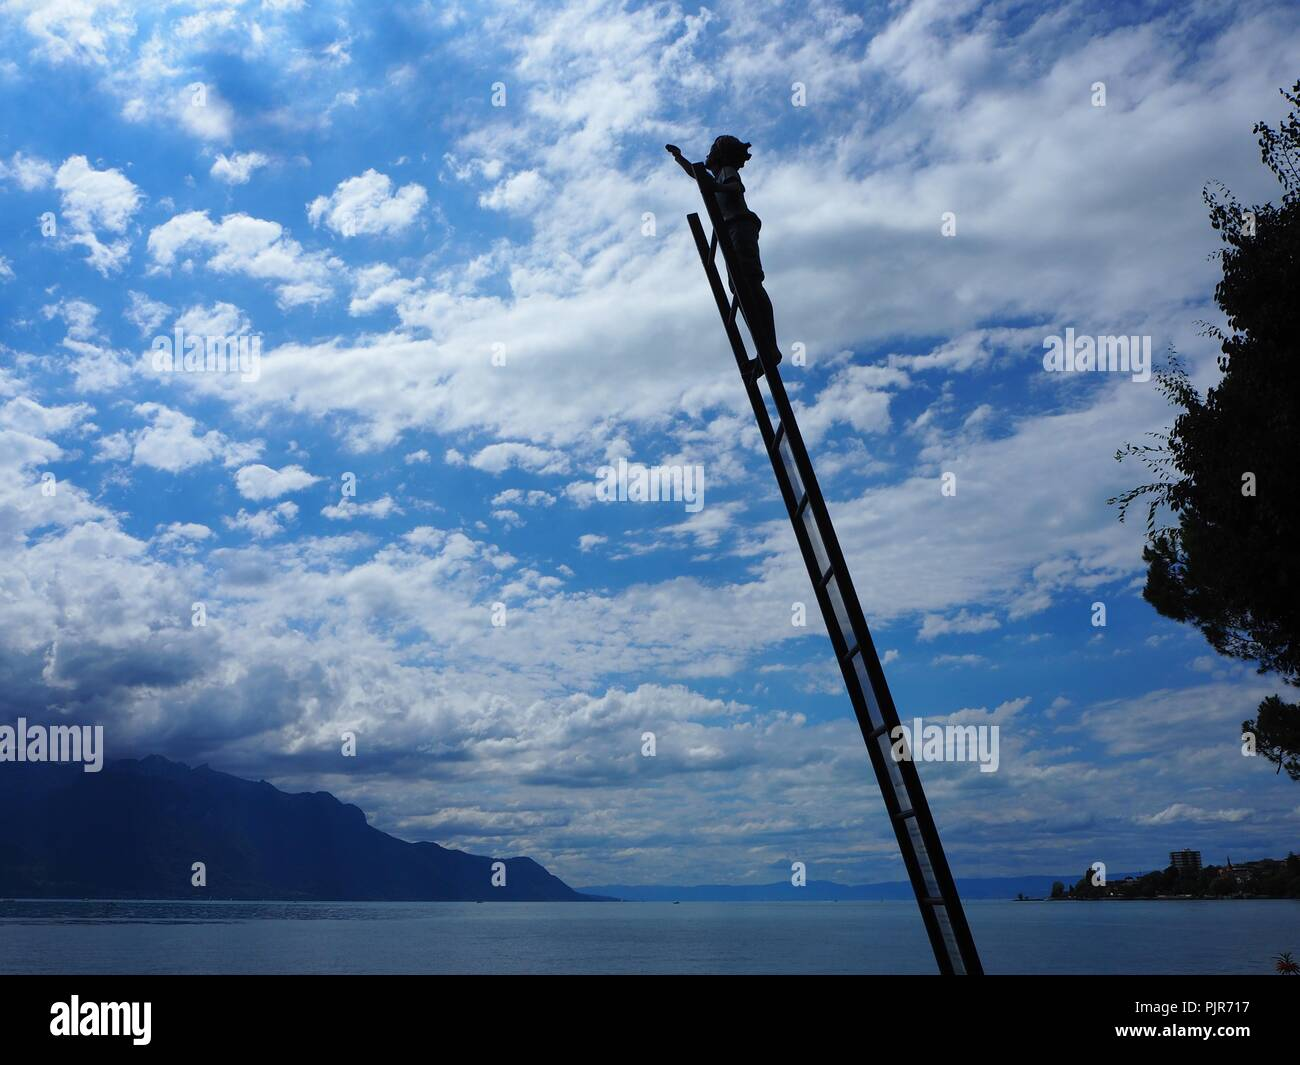 Montreux, Switzerland - Lake side, statue showing boy climbing a ladder to reach the sky - Stock Image